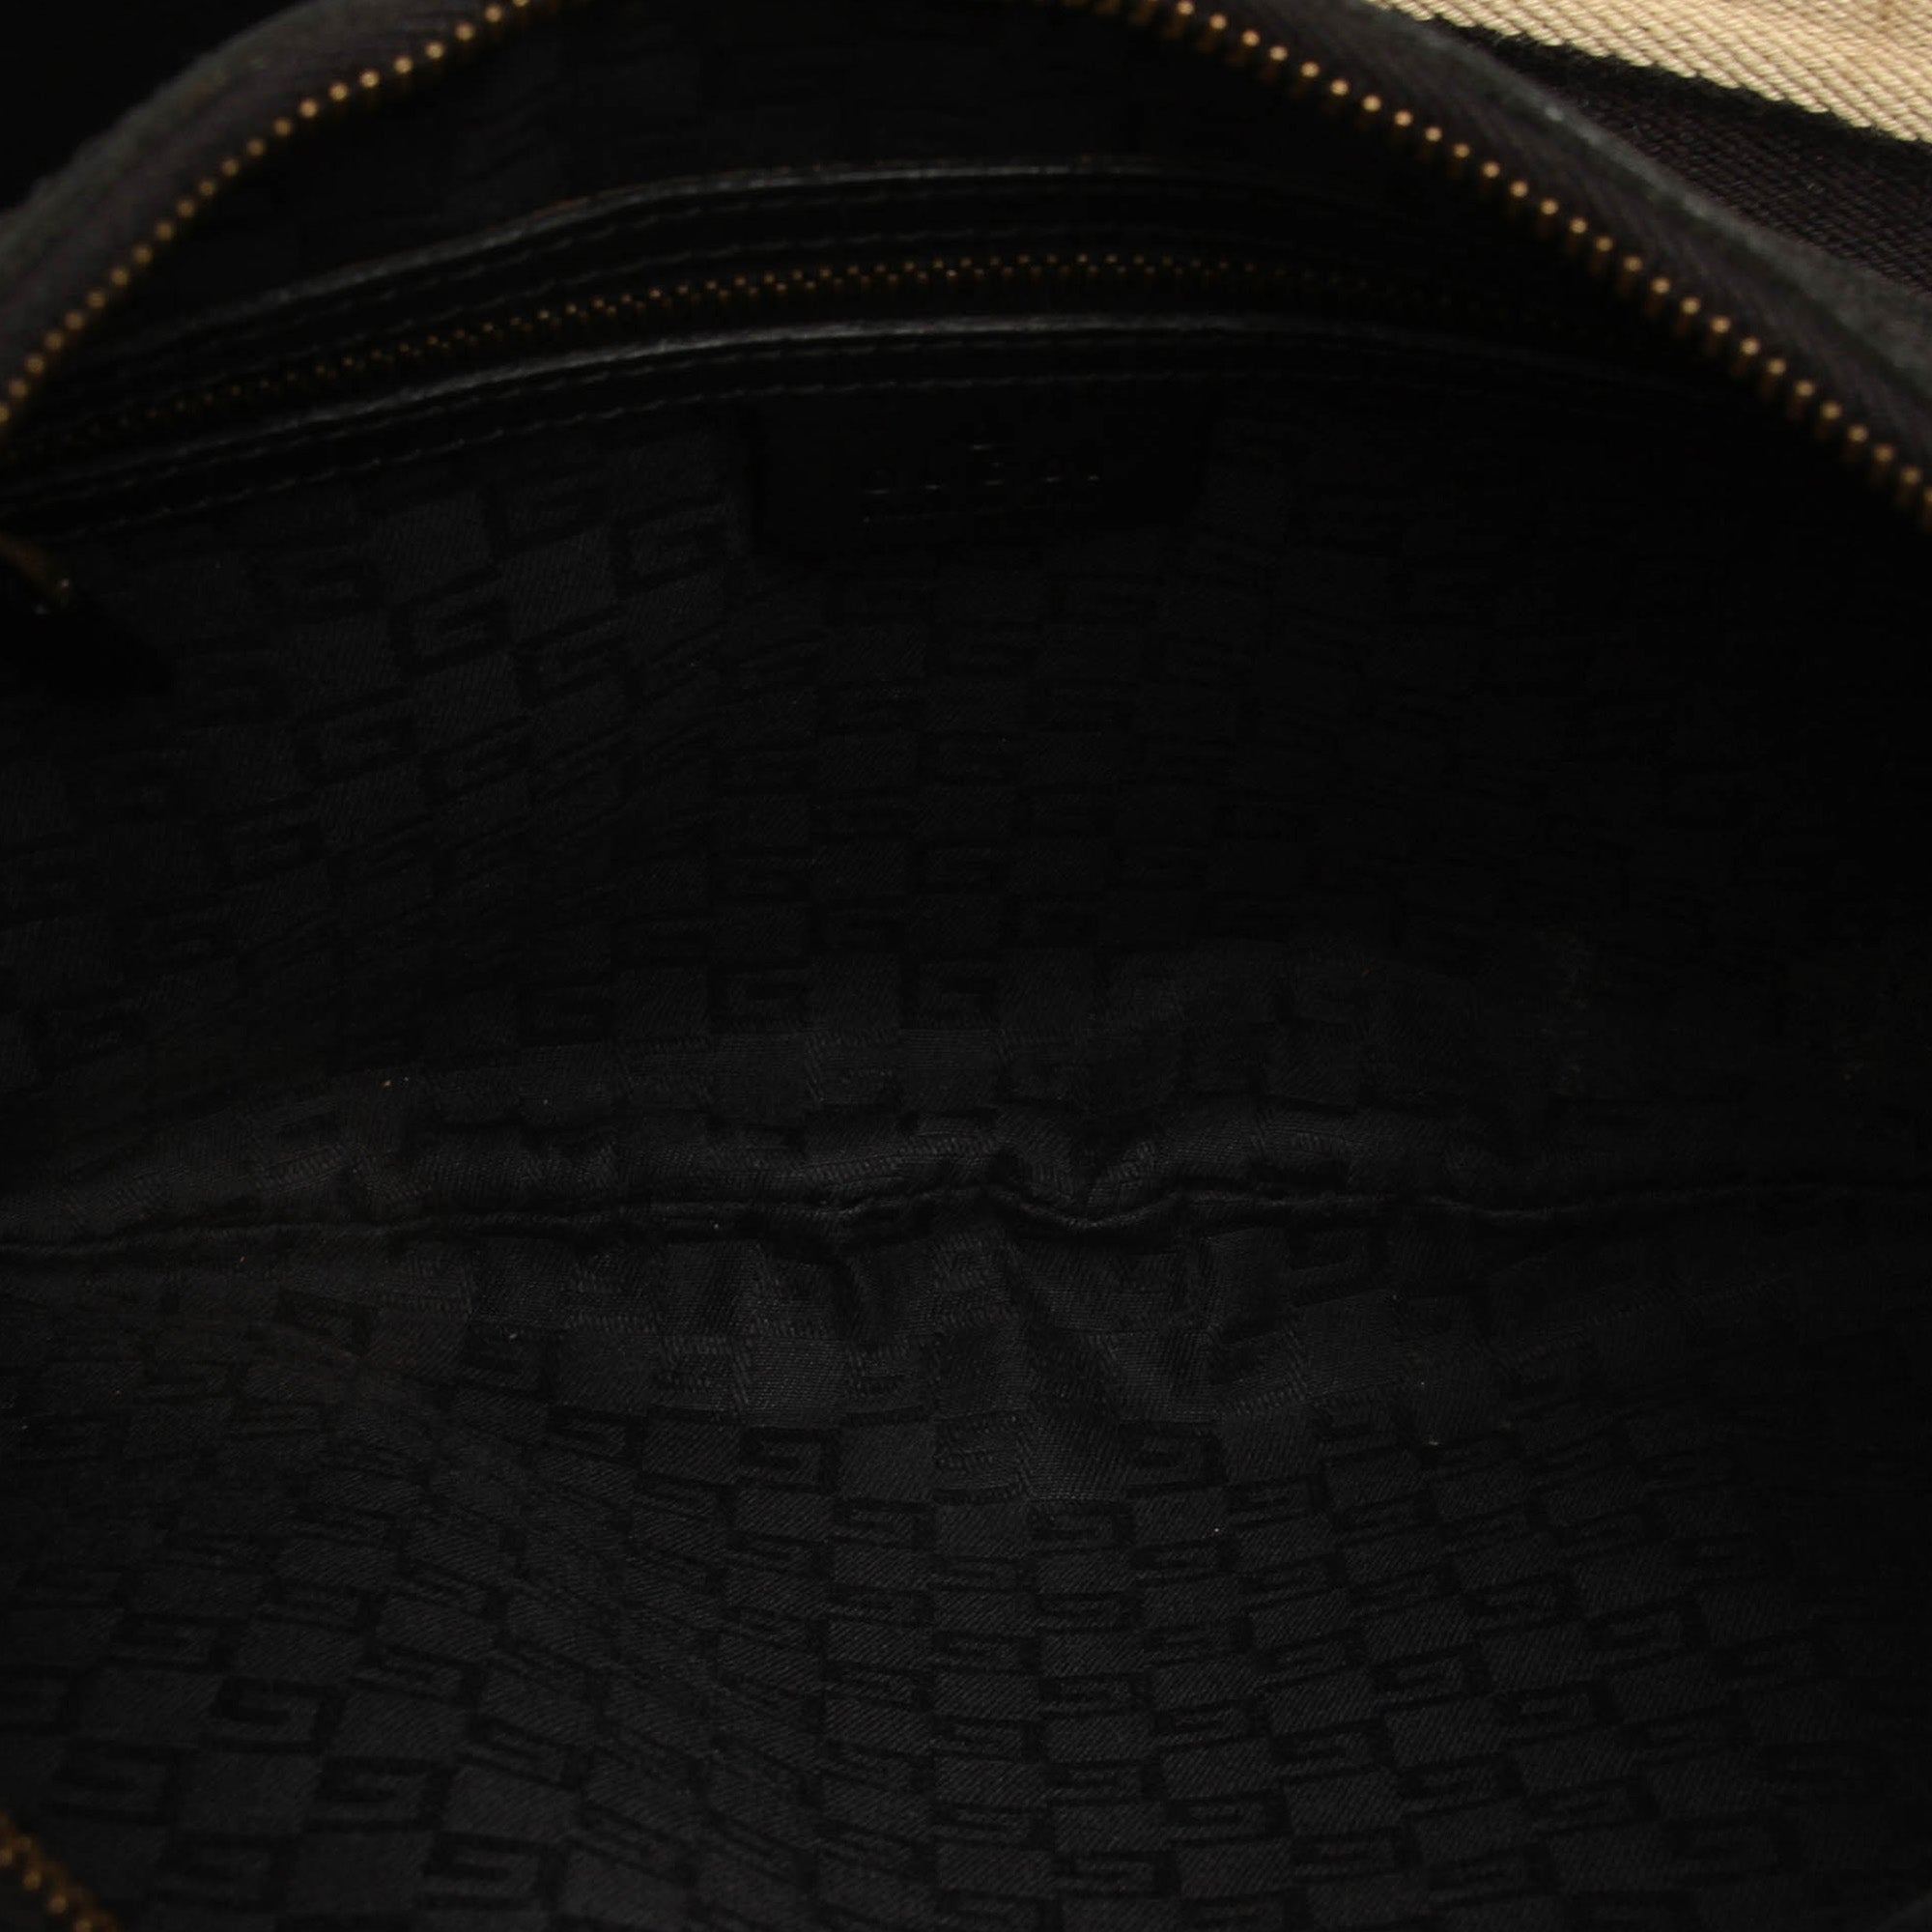 Gucci Black Web Canvas Hobo Bag